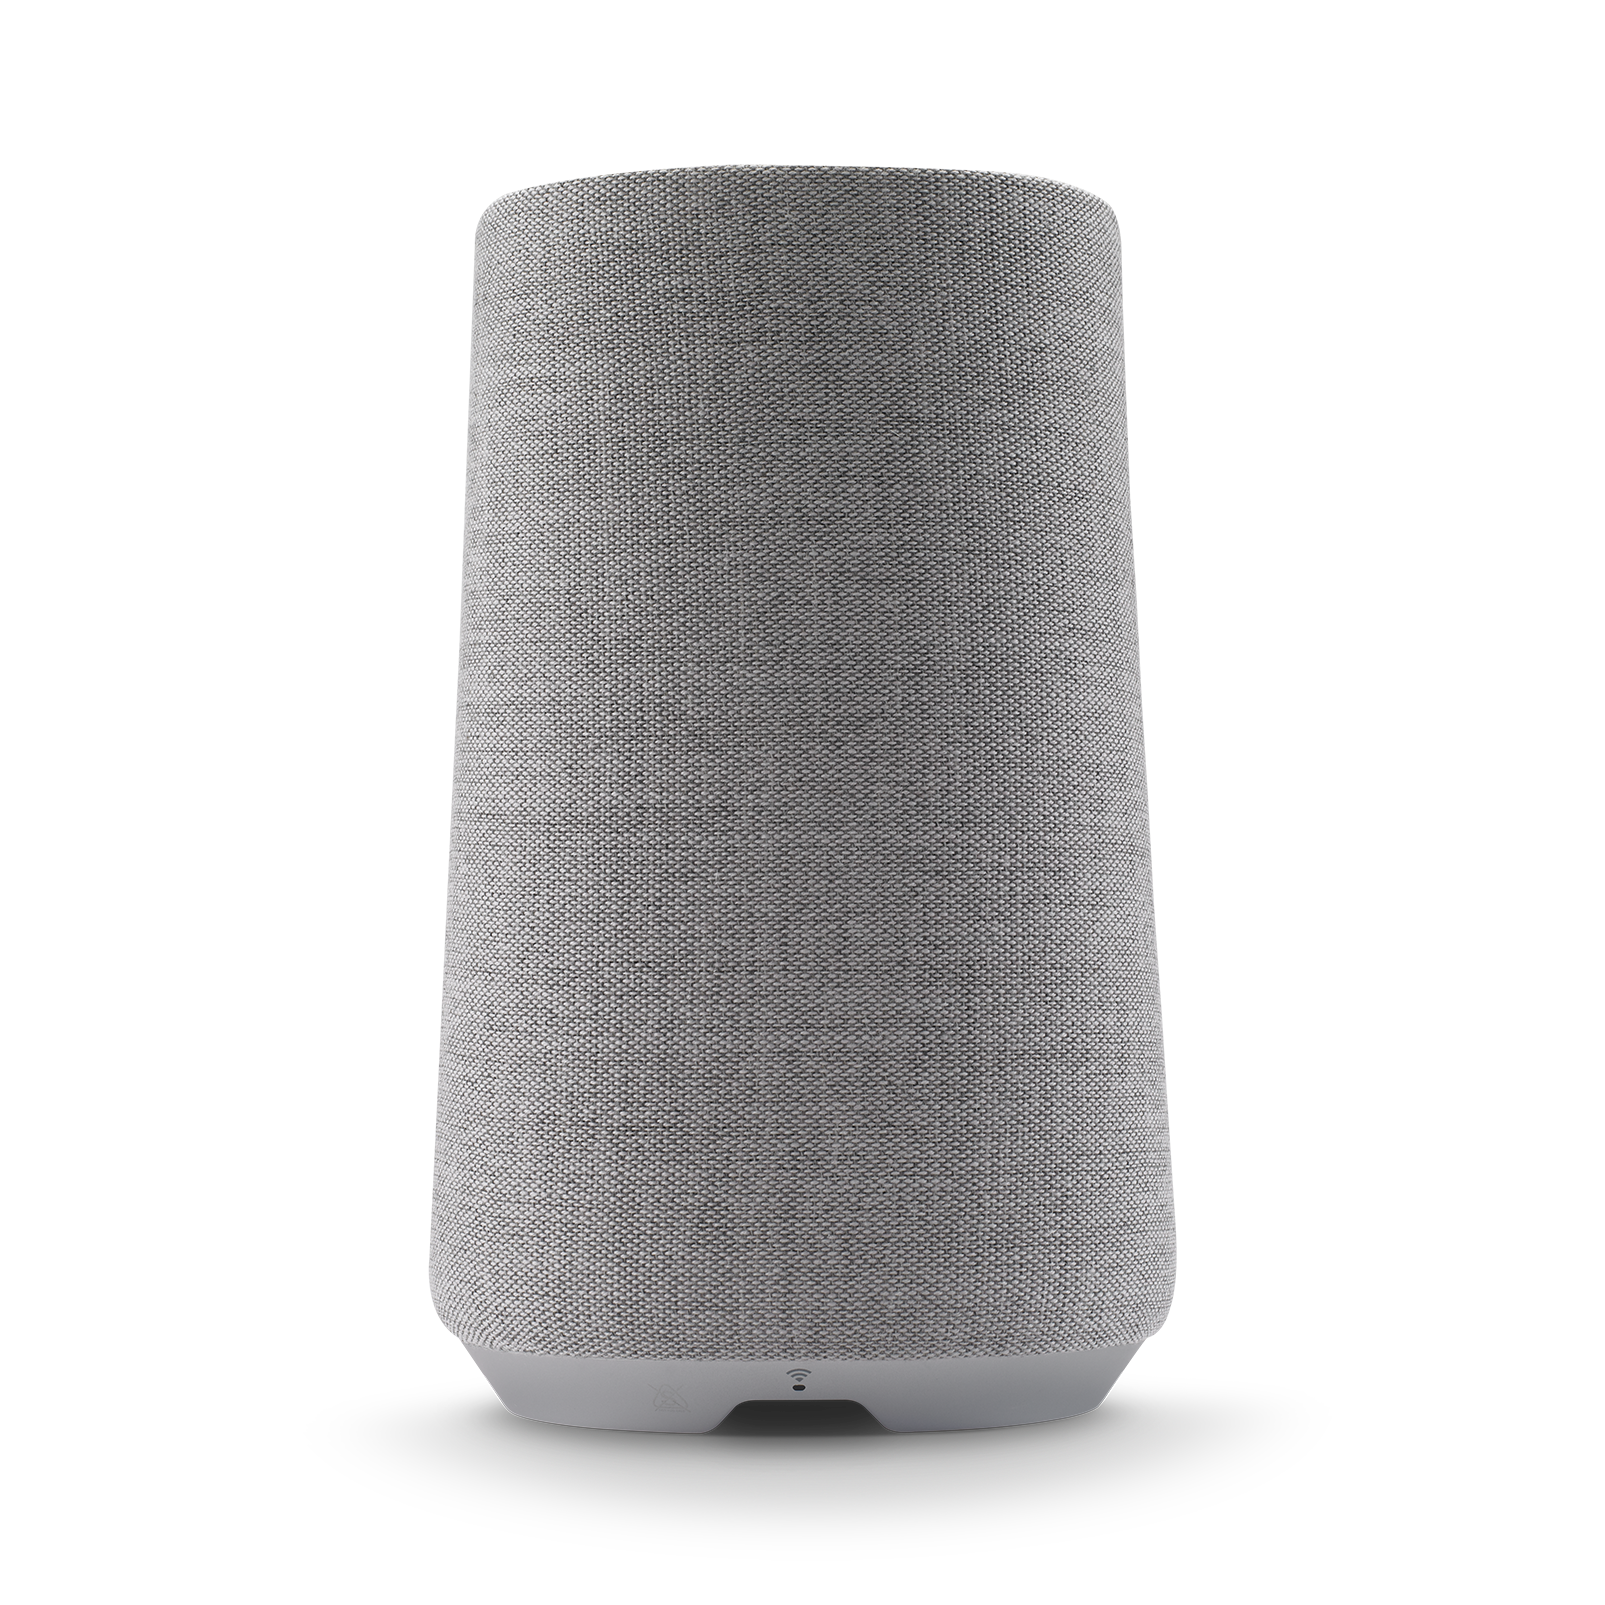 Harman Kardon Citation 100 MKII - Grey - Bring rich wireless sound to any space with the smart and compact Harman Kardon Citation 100 mkII. Its innovative features include AirPlay, Chromecast built-in and the Google Assistant. - Back